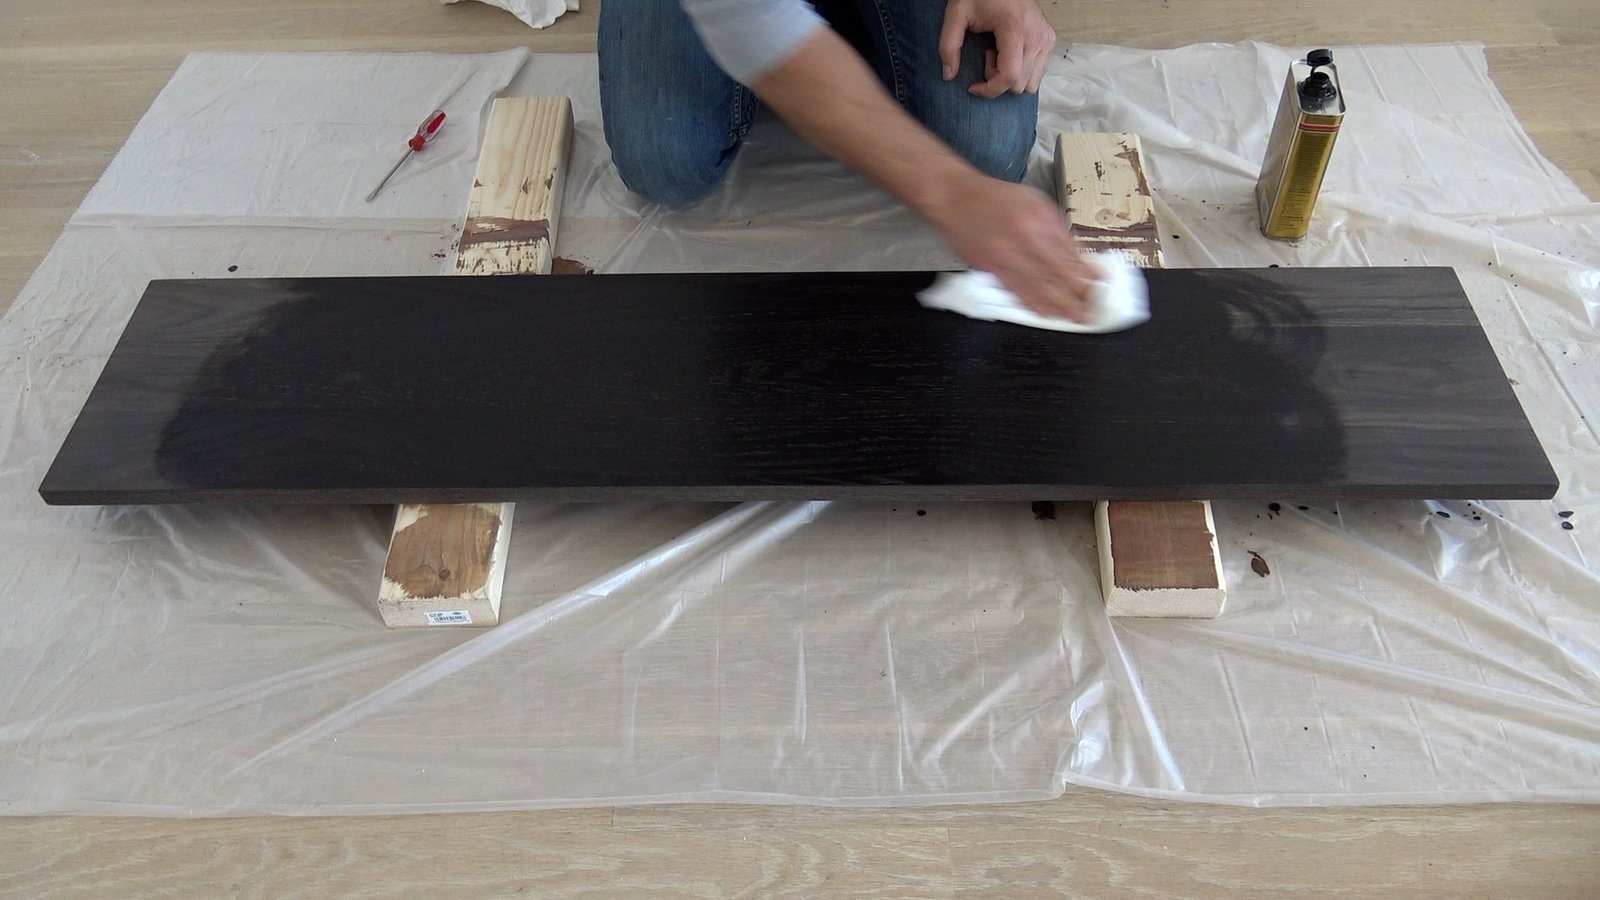 Photo 7 of 10 in Dwell Made Presents: DIY Black Oak Bench